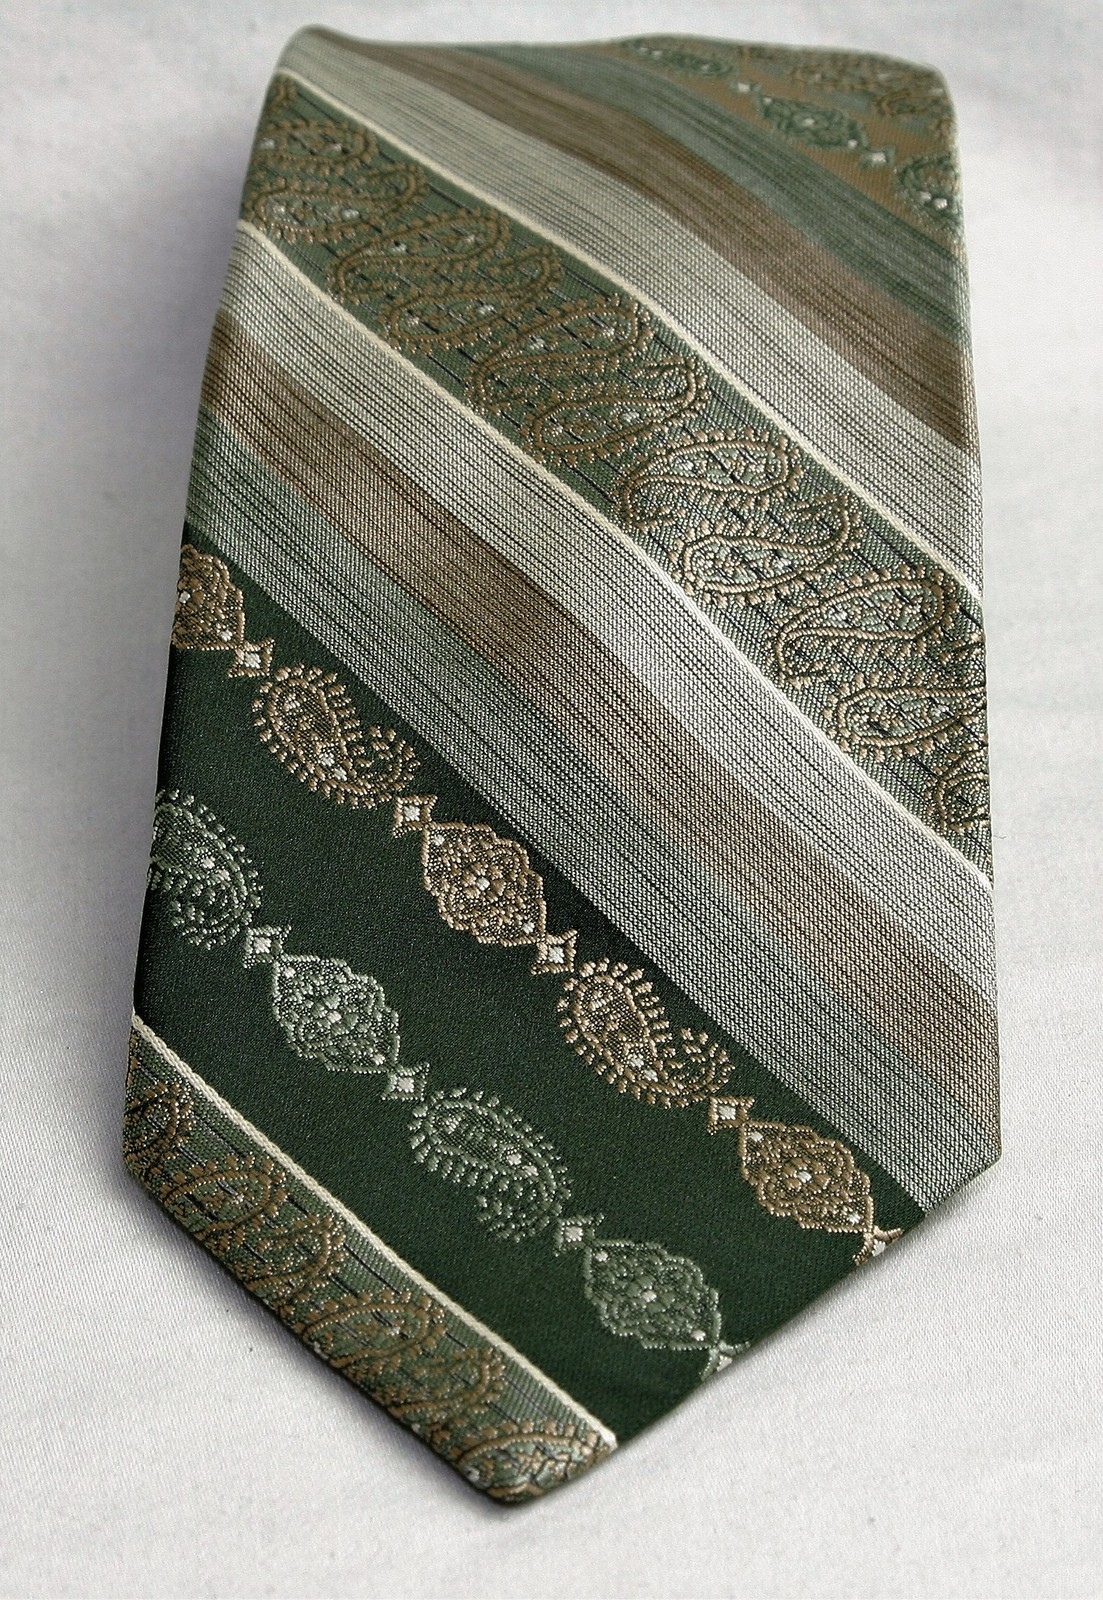 WEMLON by WEMBLEY Necktie, Stripes and Patterns 100% Polyester